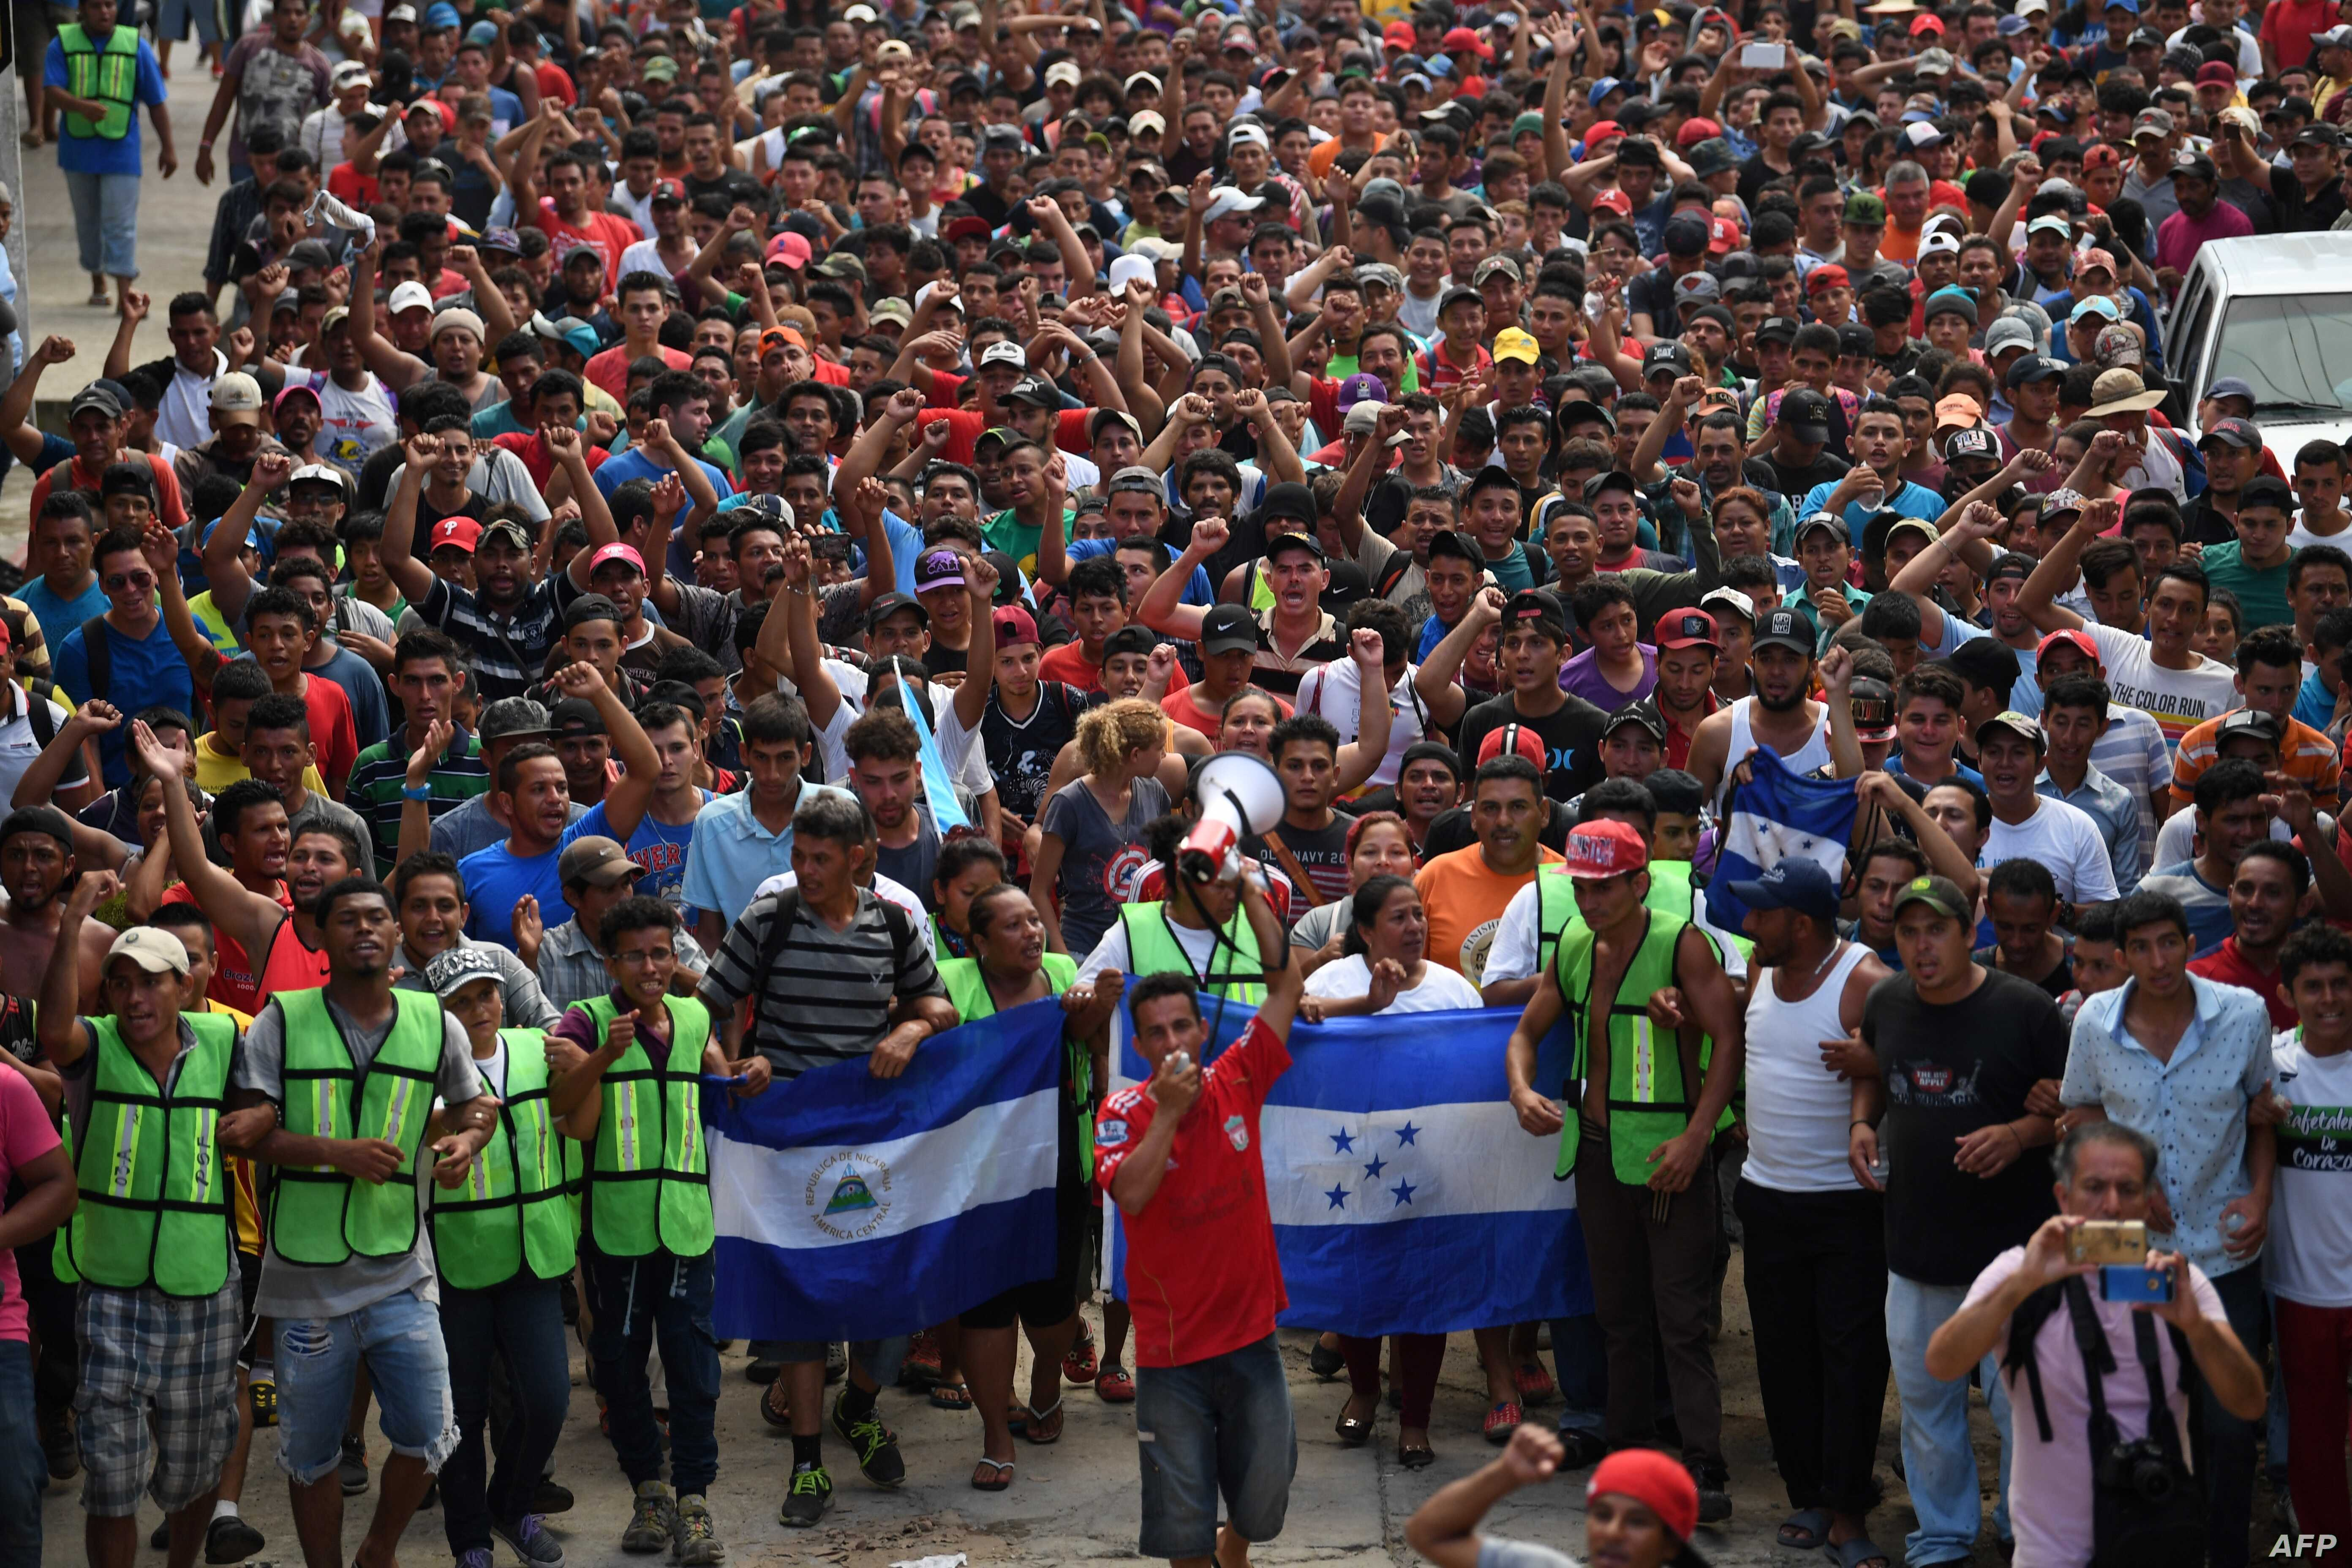 Honduran migrants heading in a caravan to the US, hold a demonstration demanding authorities to allow the rest of the group to cross, in Ciudad Hidalgo, Chiapas state, Mexico after crossing from Guatemala, Oct. 20, 2018.